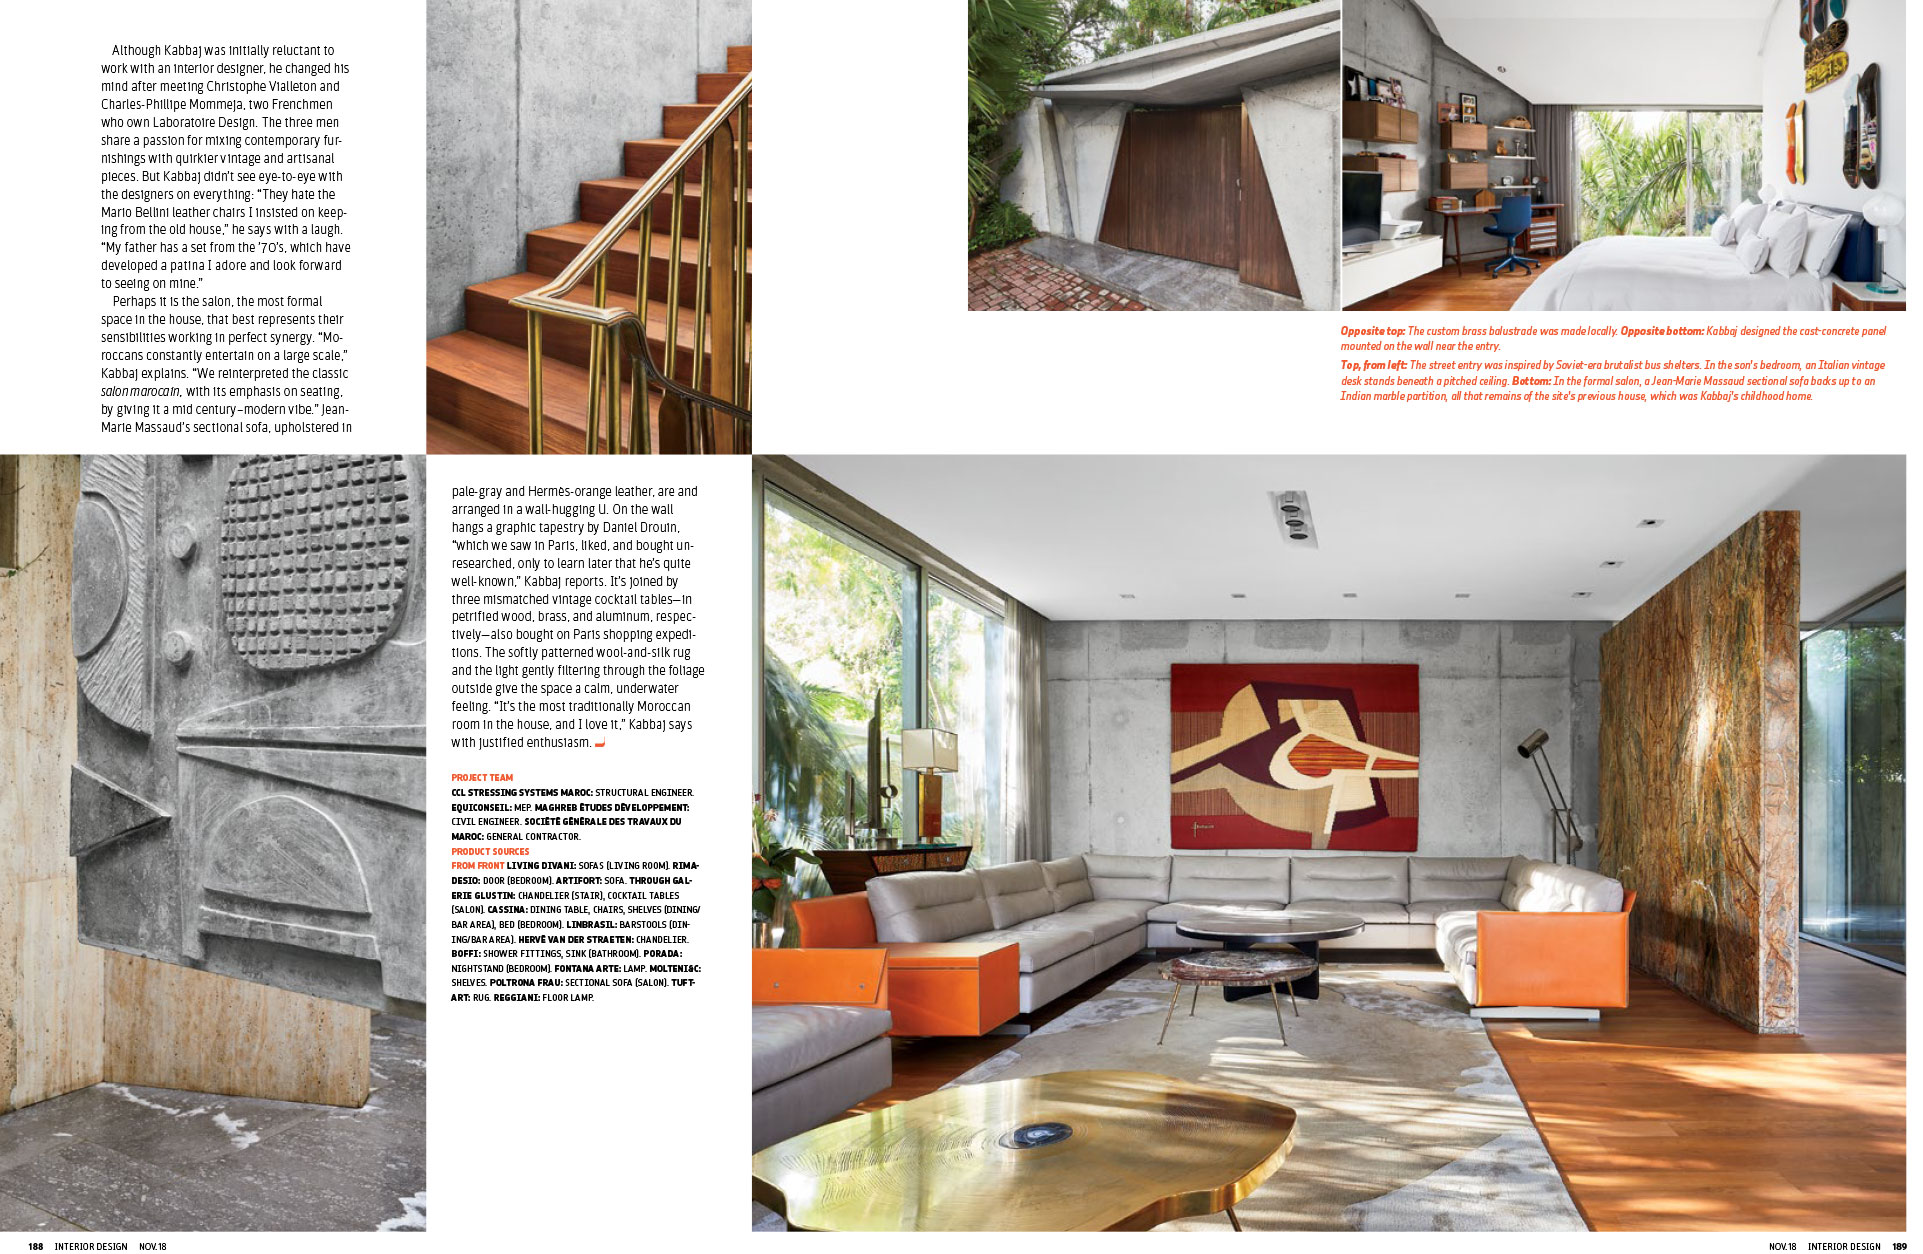 doublespace-photography-interior-design-november-2018-page-4